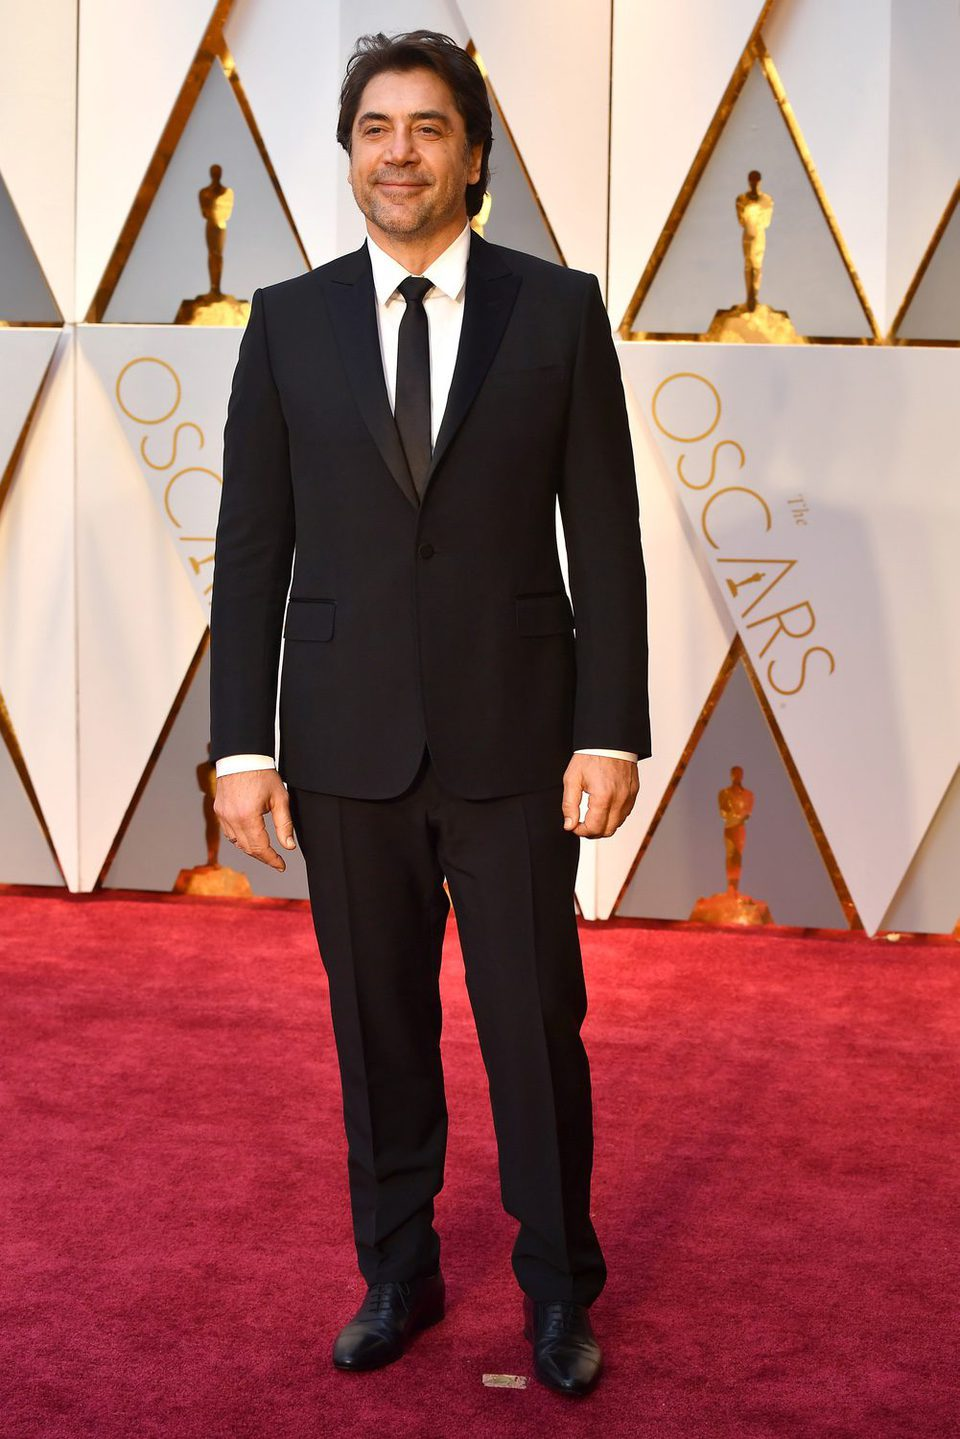 Javier Bardem at the red carpet of the Oscars 2017